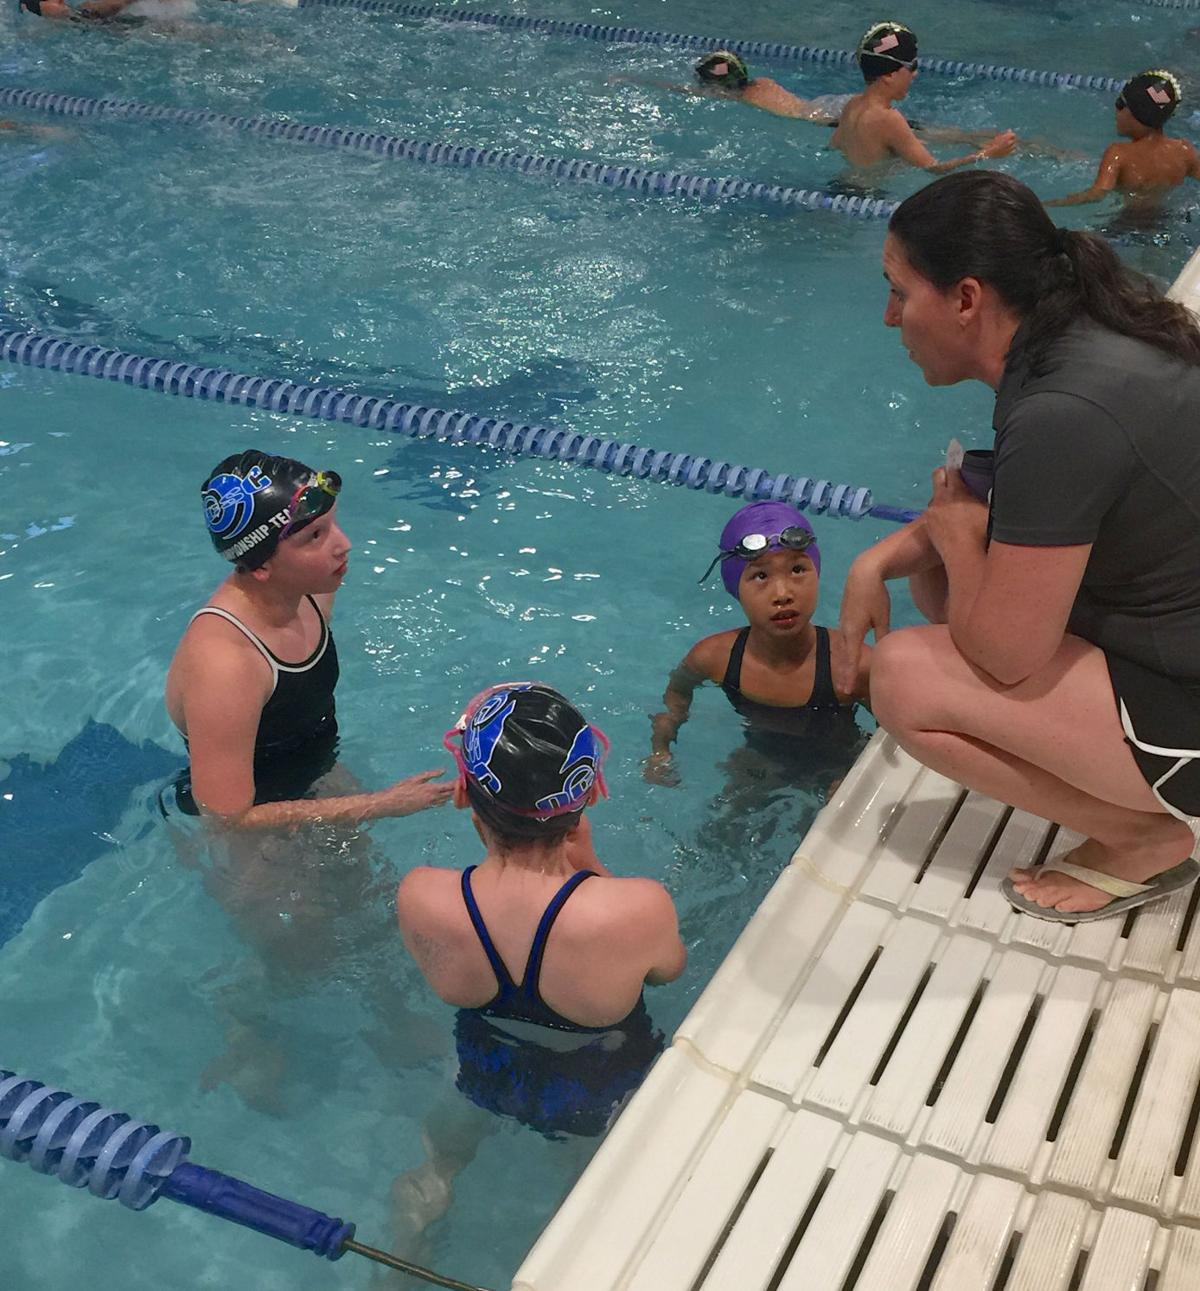 Swimmers beat the heat at Aquatic Center